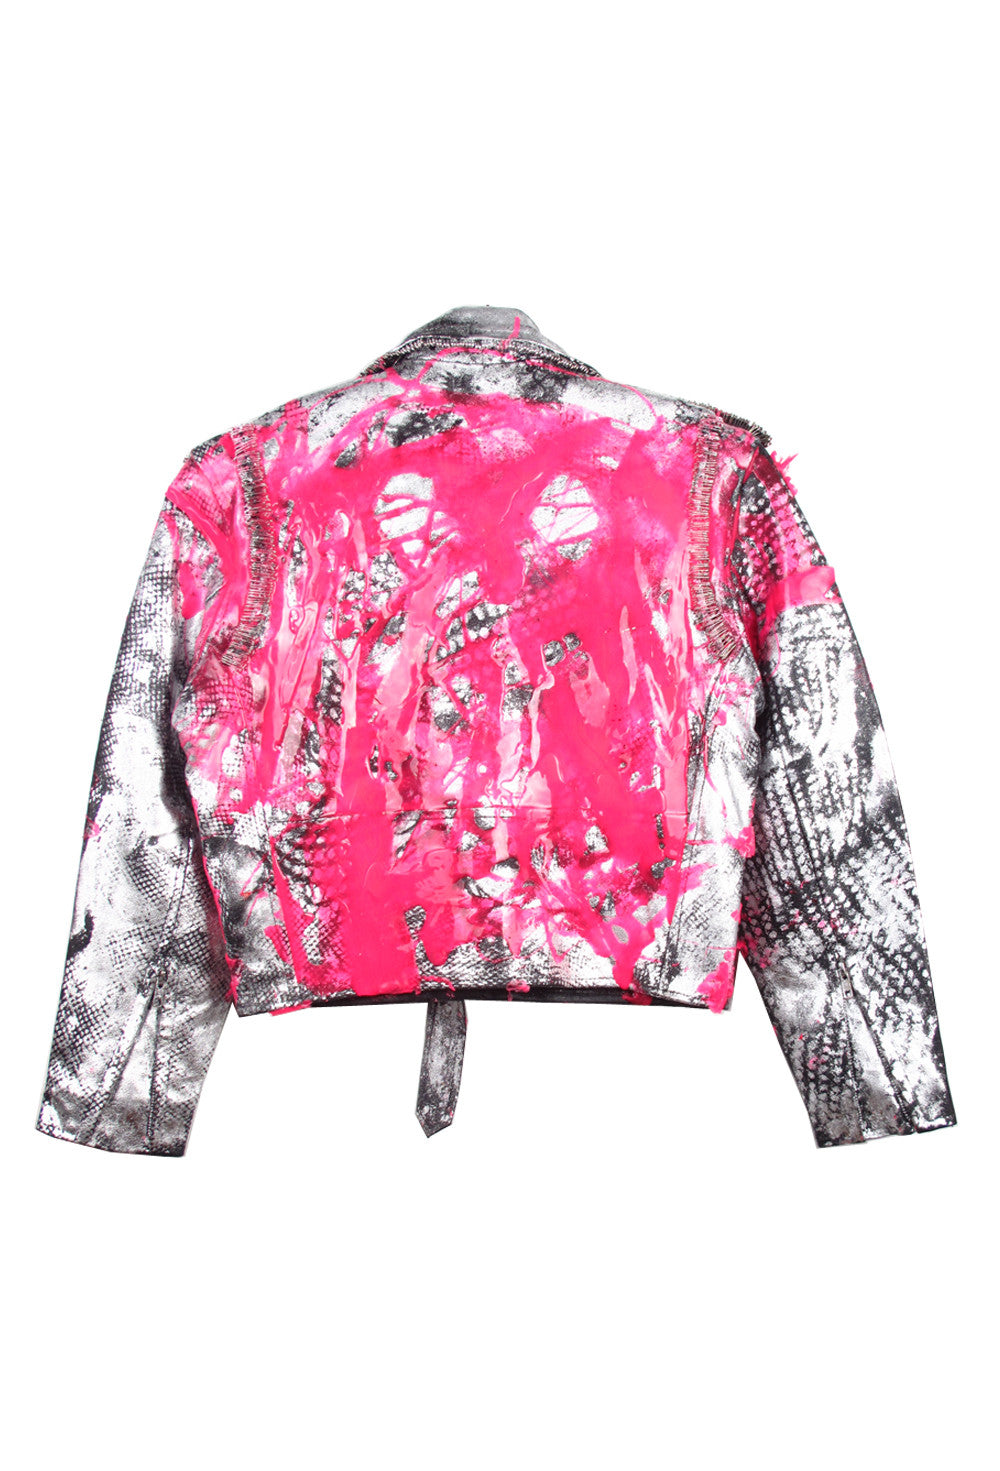 SSIK ONE OF A KIND Fluo Silicon Drip Metallic Leather Moto Jacket - AVAILABLE FOR  IMMEDIATE DELIVERY SIZE 38